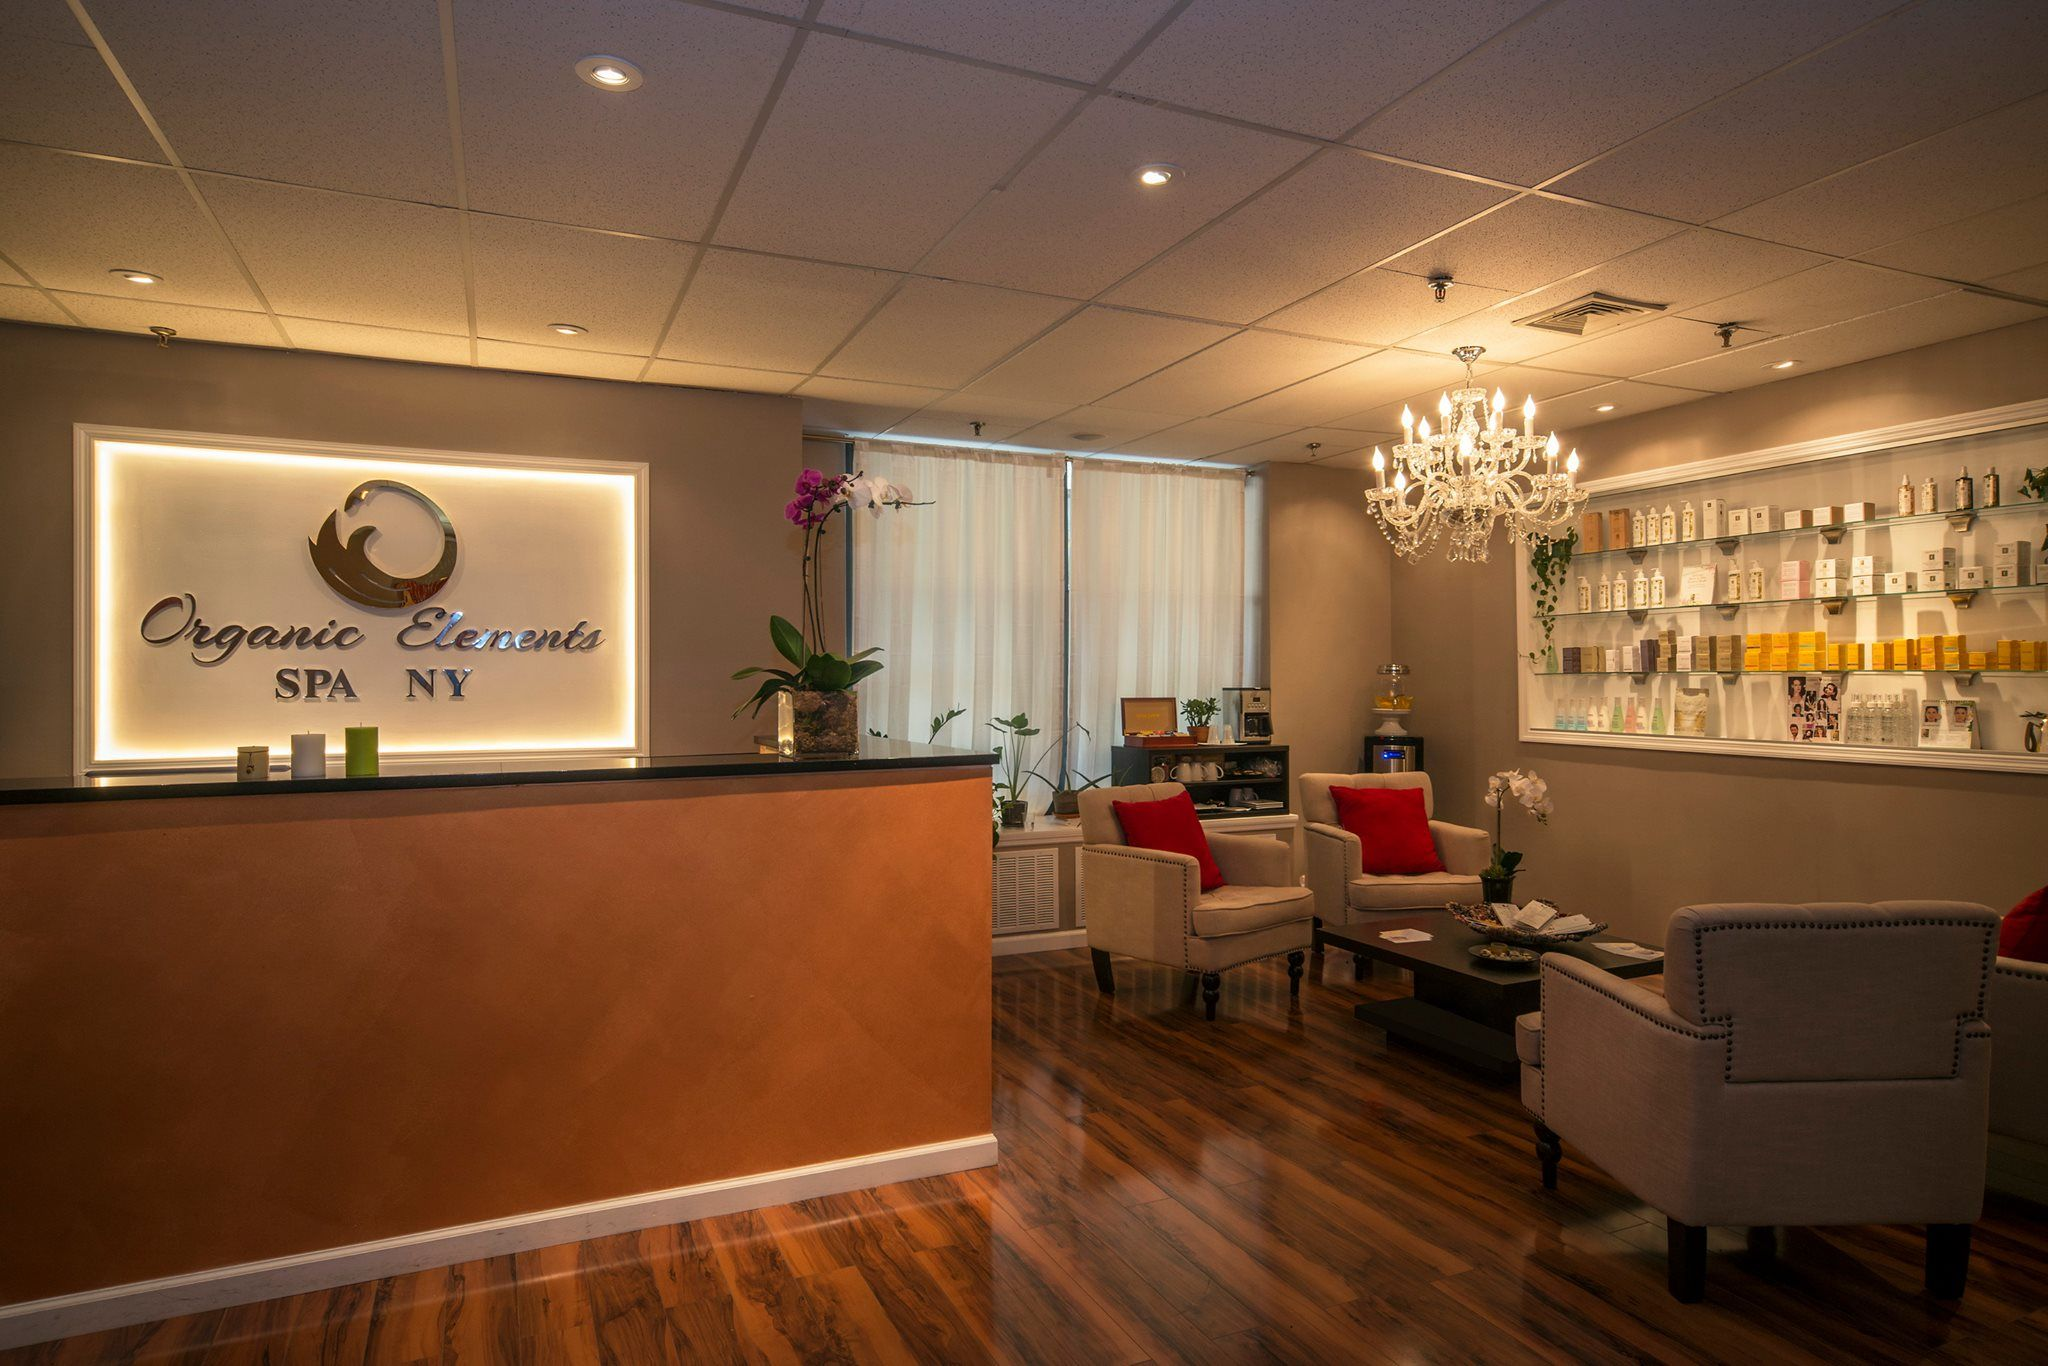 Organic Element Spa NY, 224 West 35Th Street